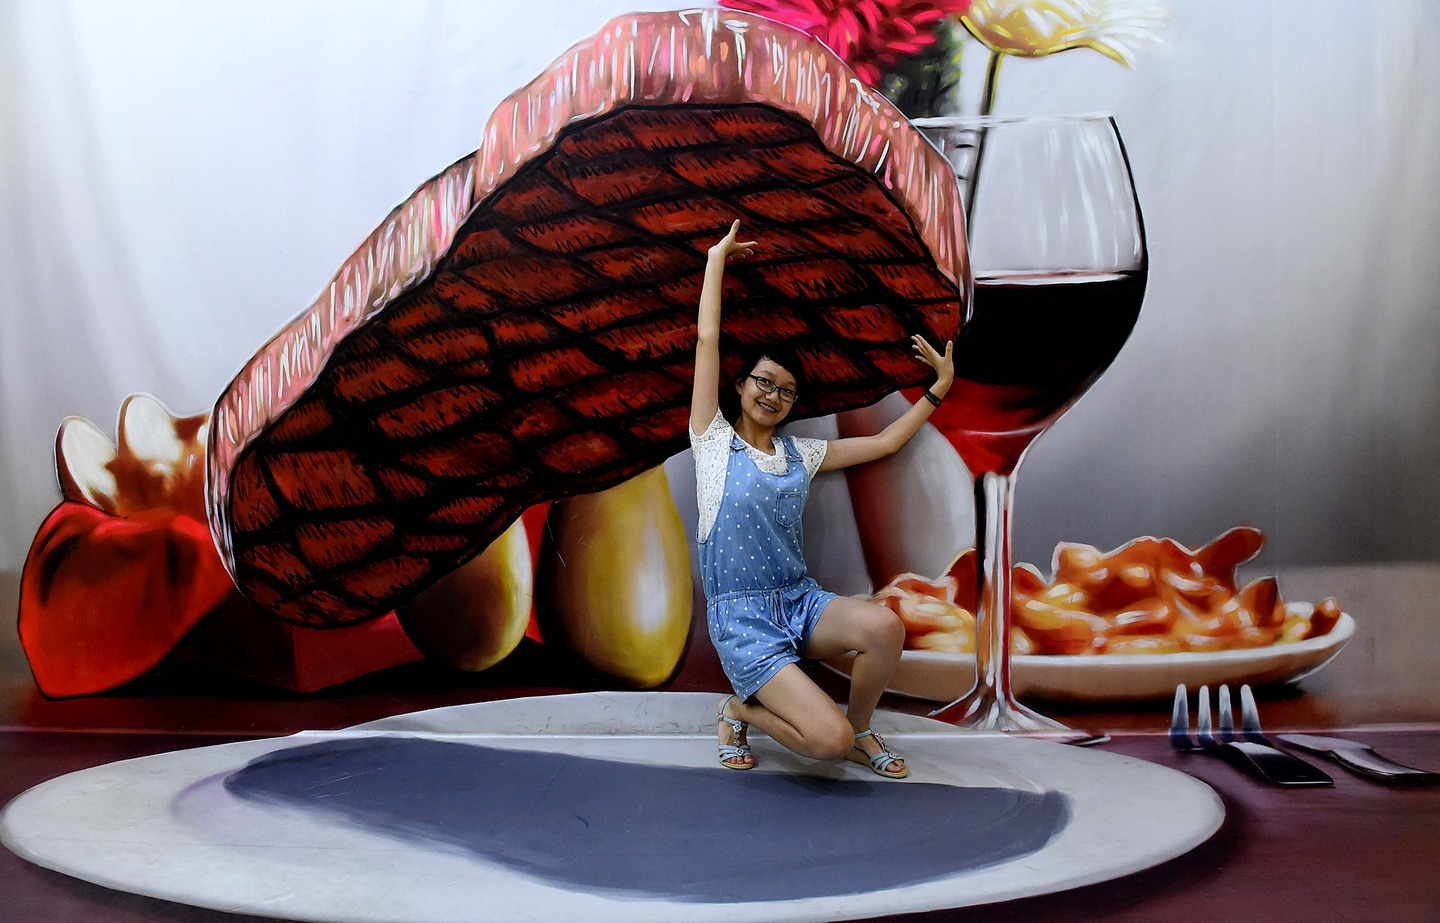 Zhengzhou-Art-Museum-Red-Wine-Steak